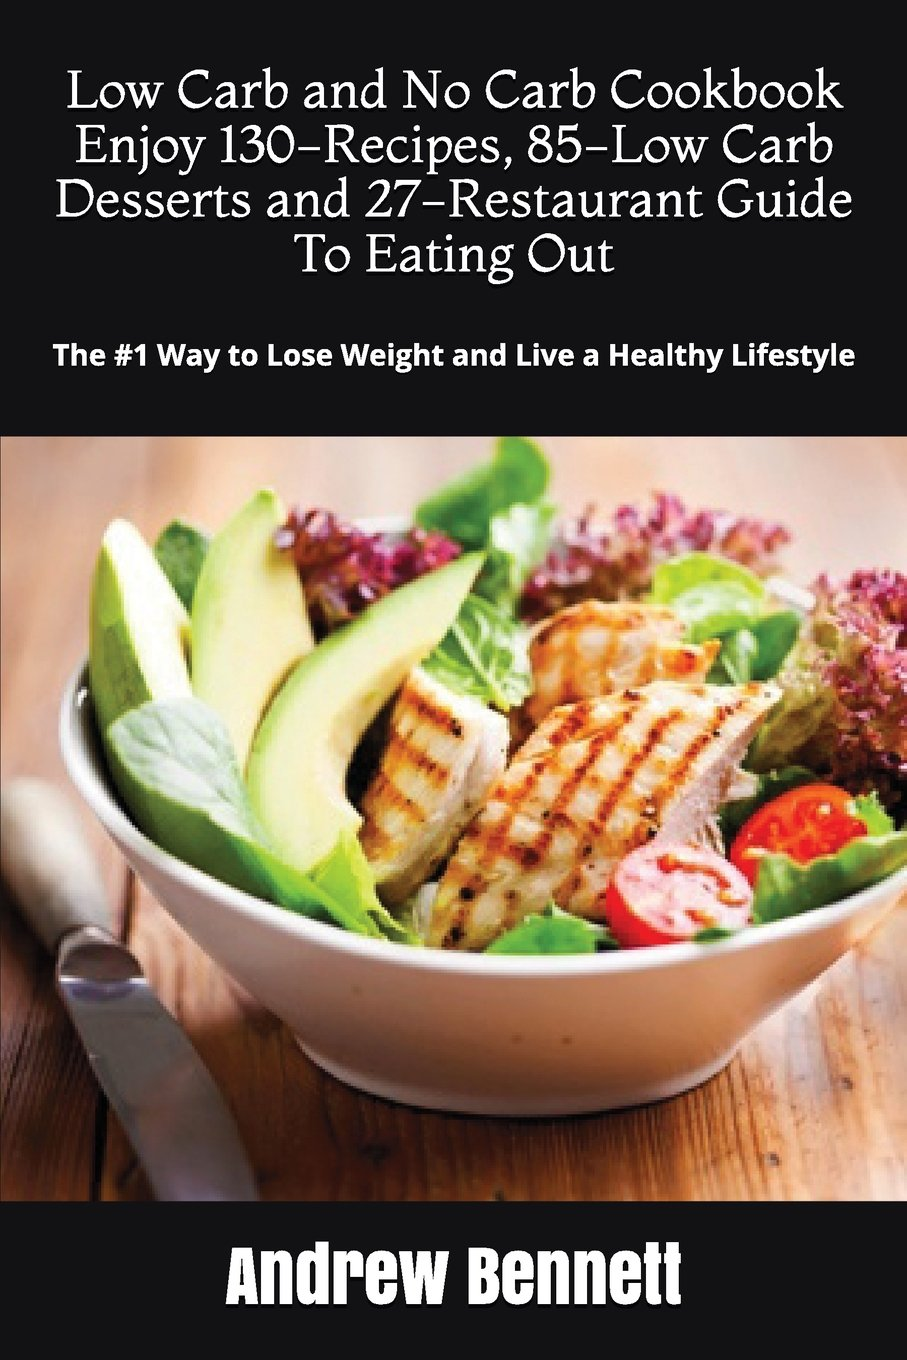 Read Online Low Carb and No Carb Cookbook. Enjoy 130-Recipes, 85-Low Carb Desserts and 27-Restaurant Guide To Eating Out: The #1 Way to Lose Weight and Live a ... (Low Carb Diet Recipes and Restaurant Guide) ebook